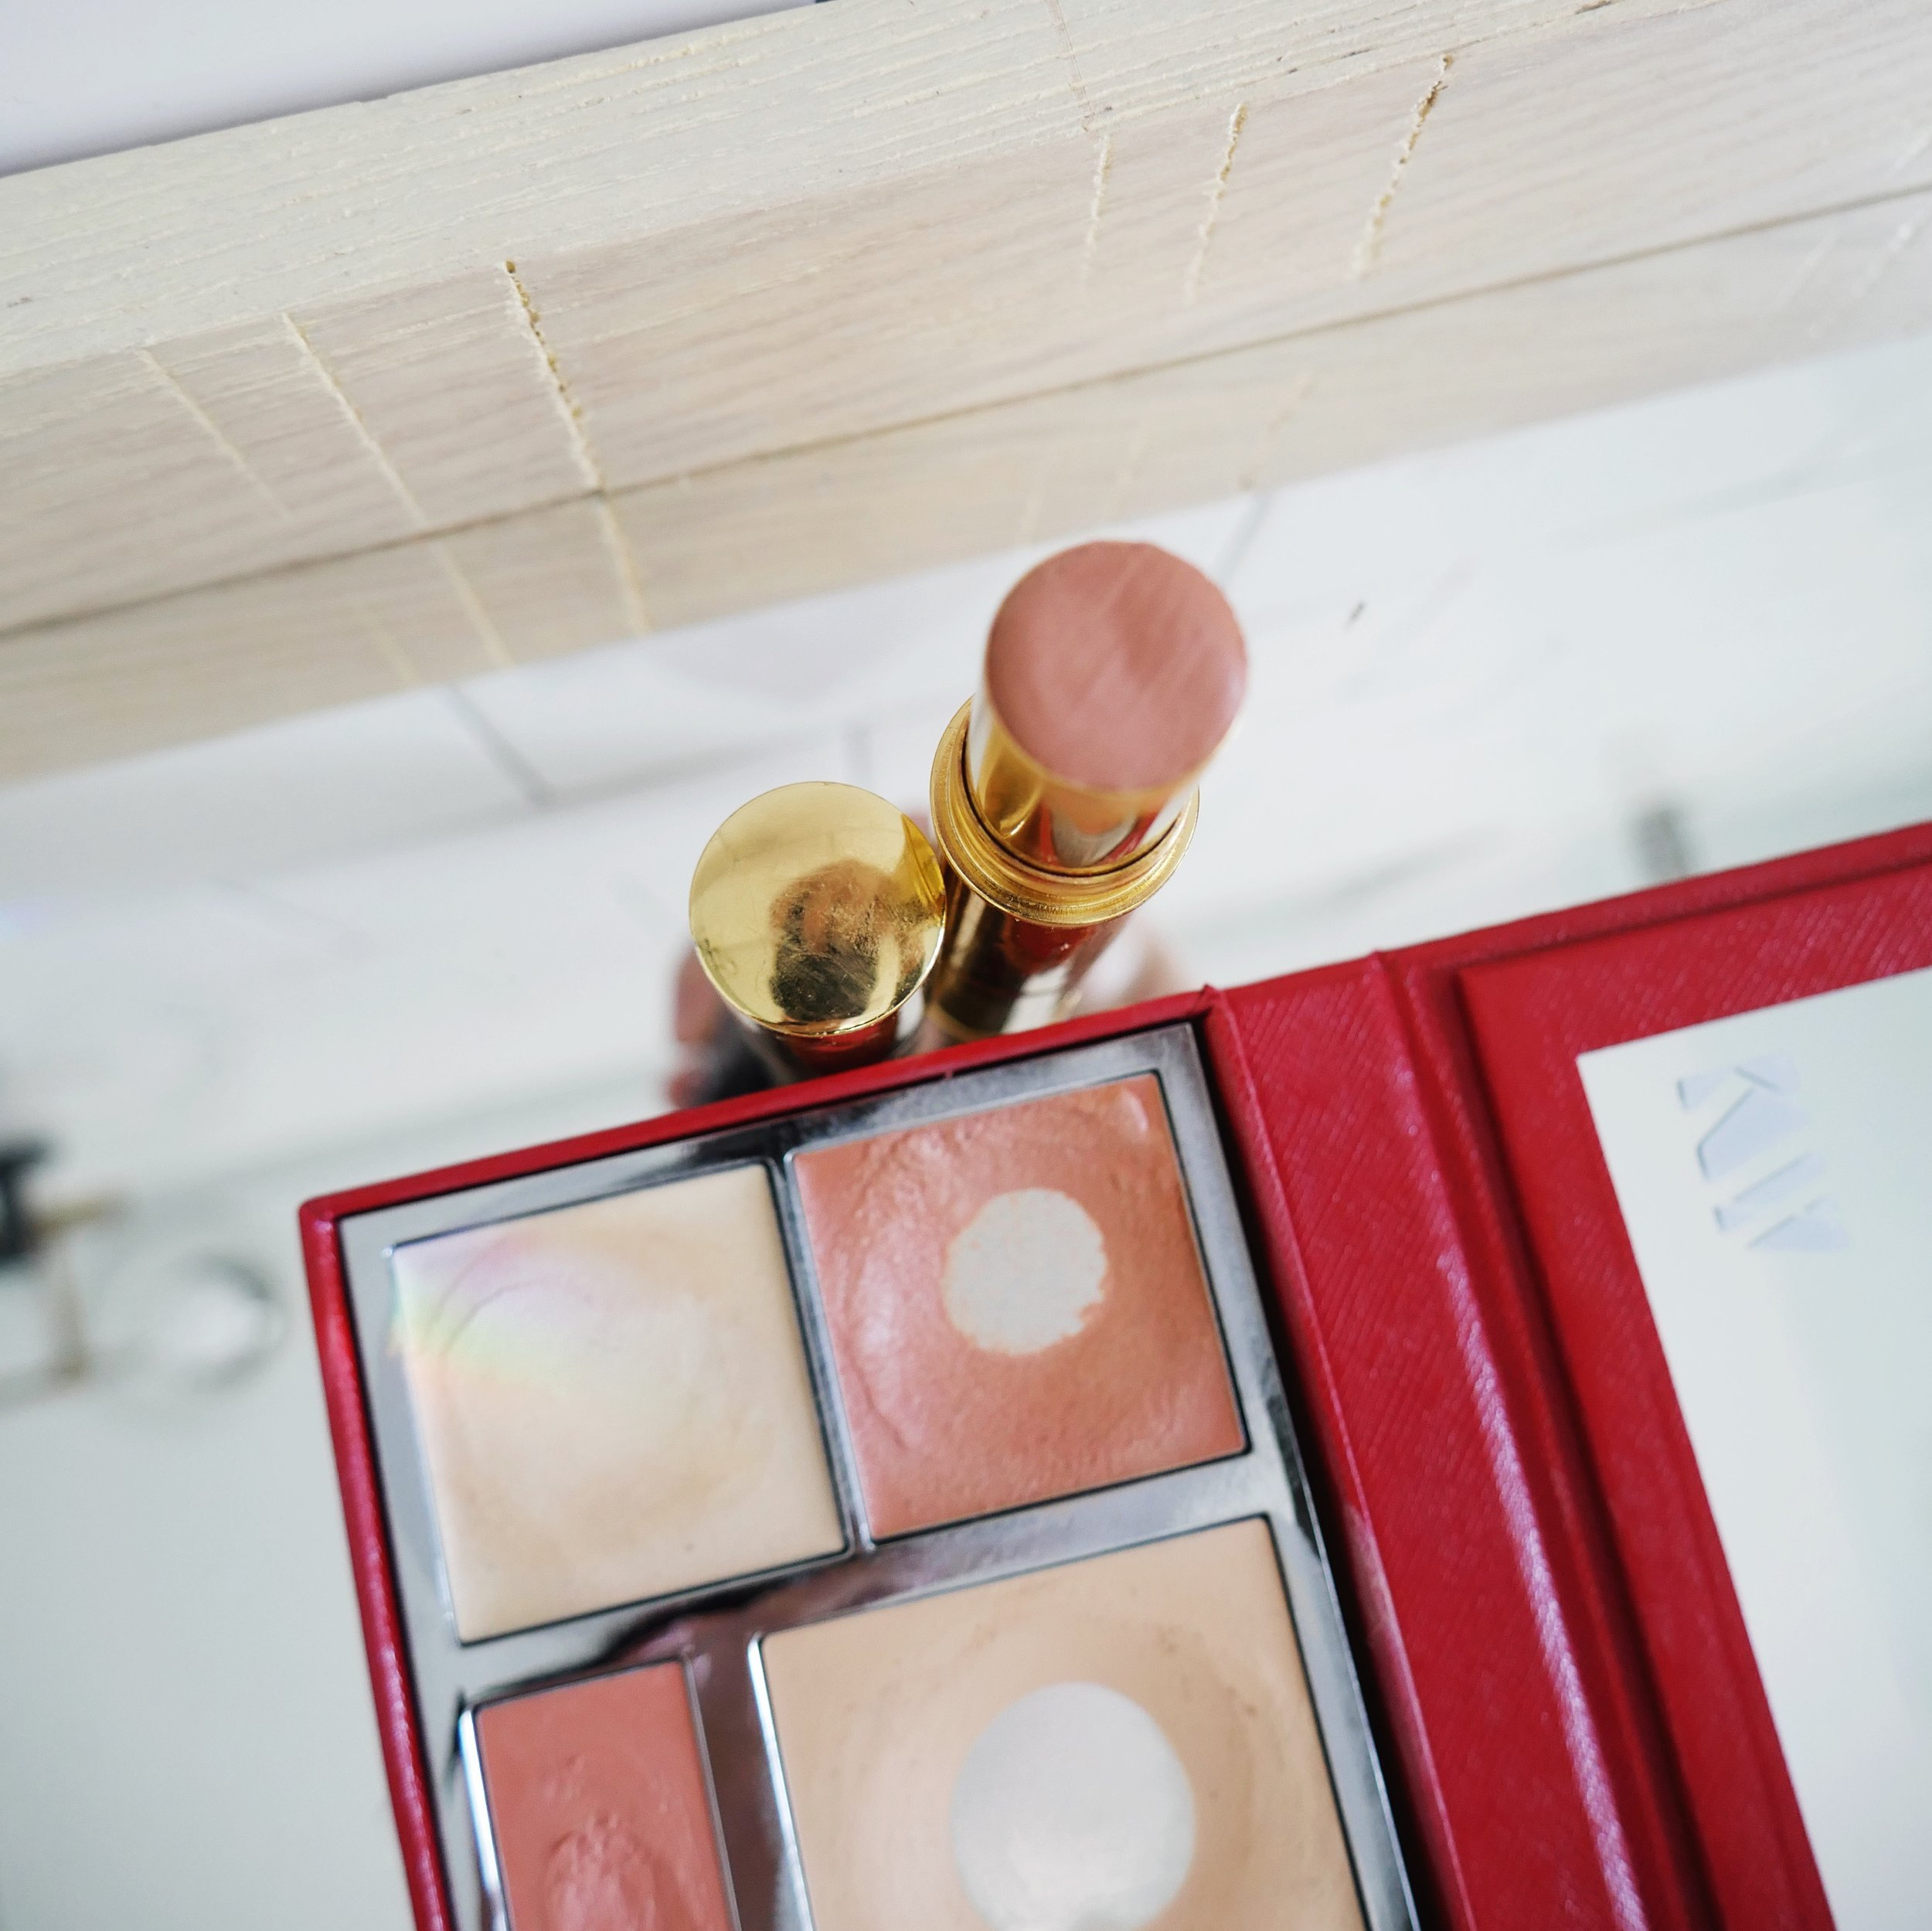 kjaer weis cream blush review